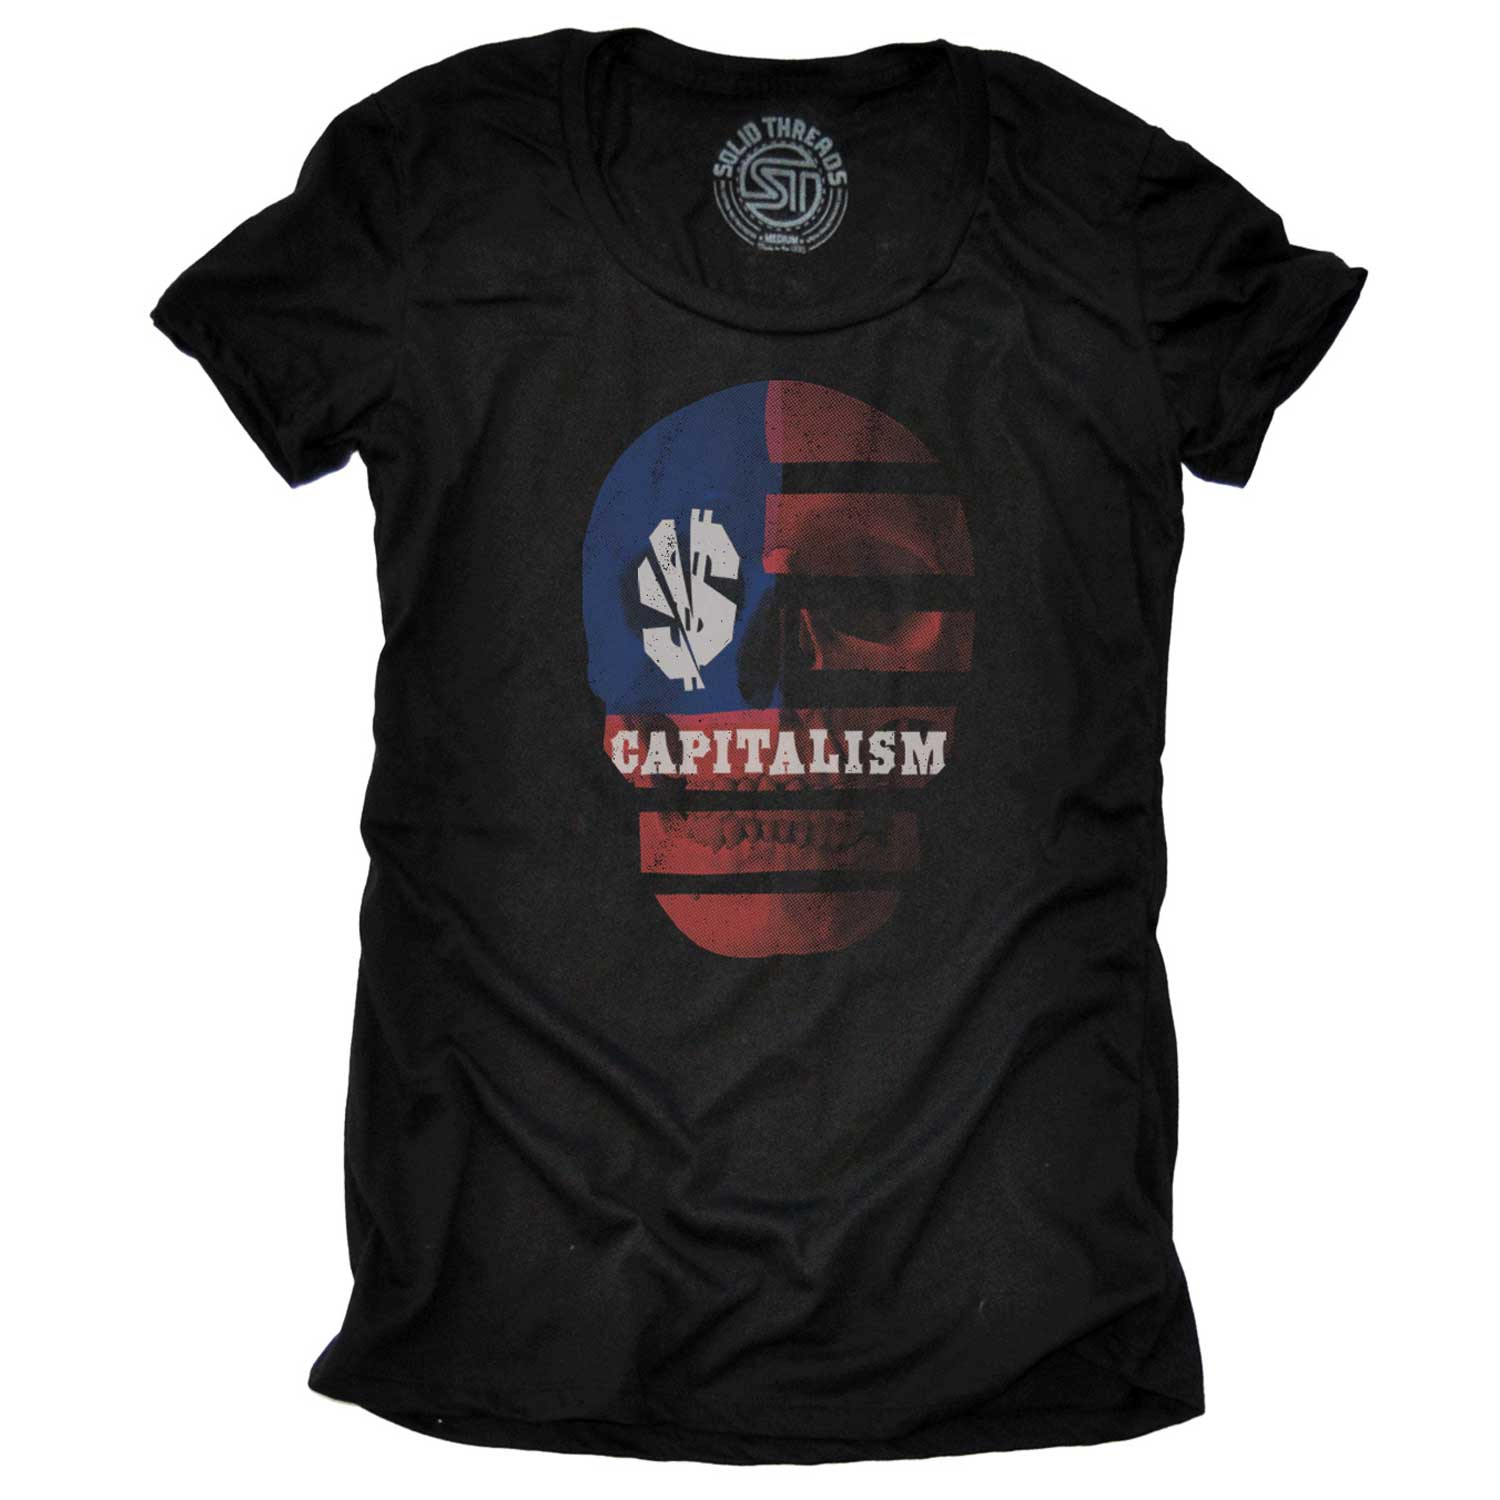 Women's Capitalism Skull Vintage Inspired T-shirt | Cool Income Equality Graphic Tee | Solid Threads